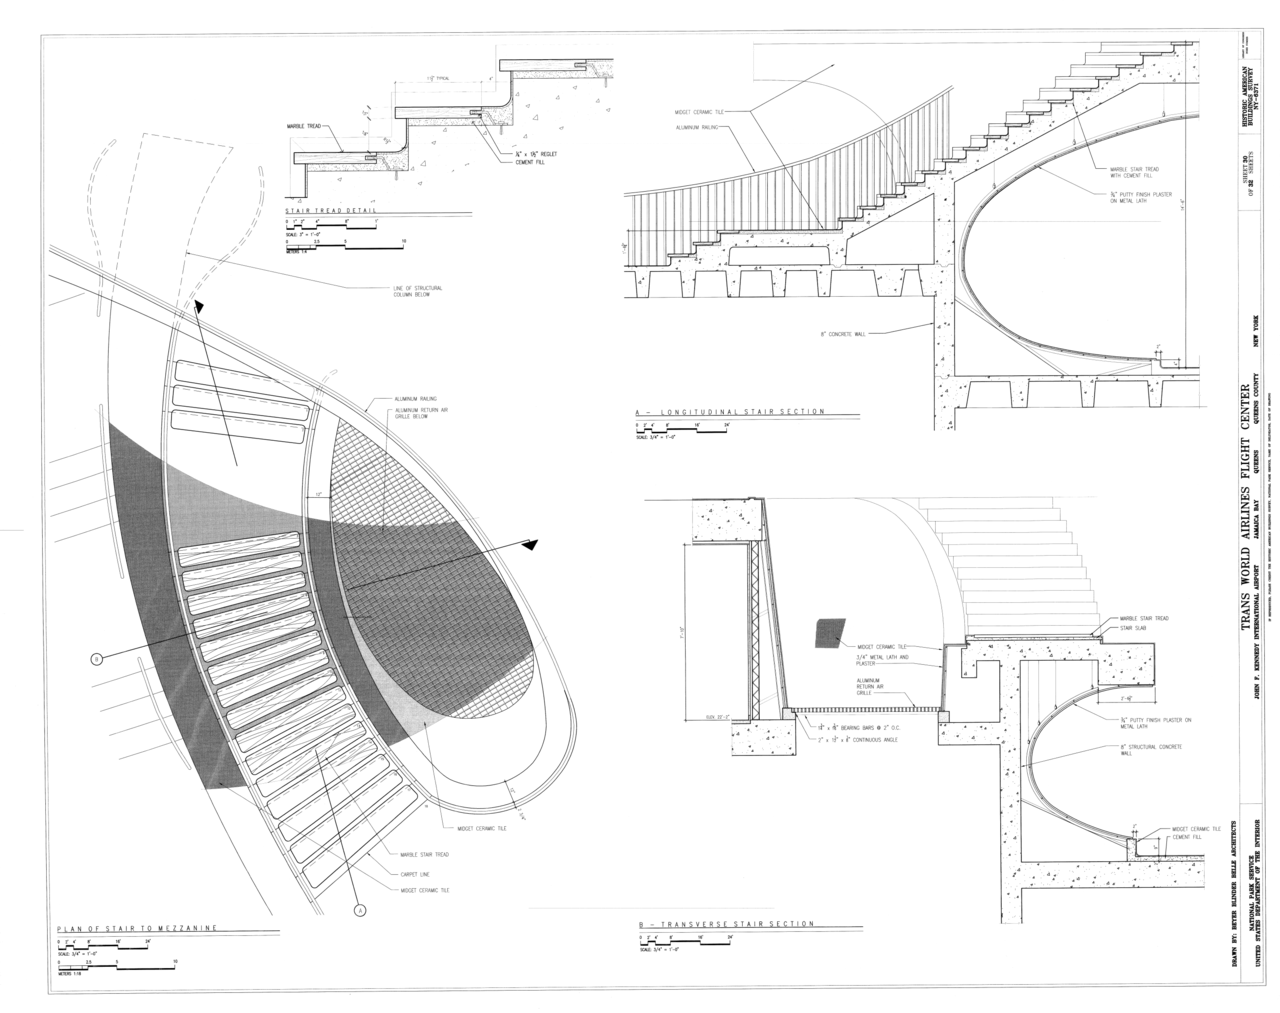 file enlarged stair plan and details